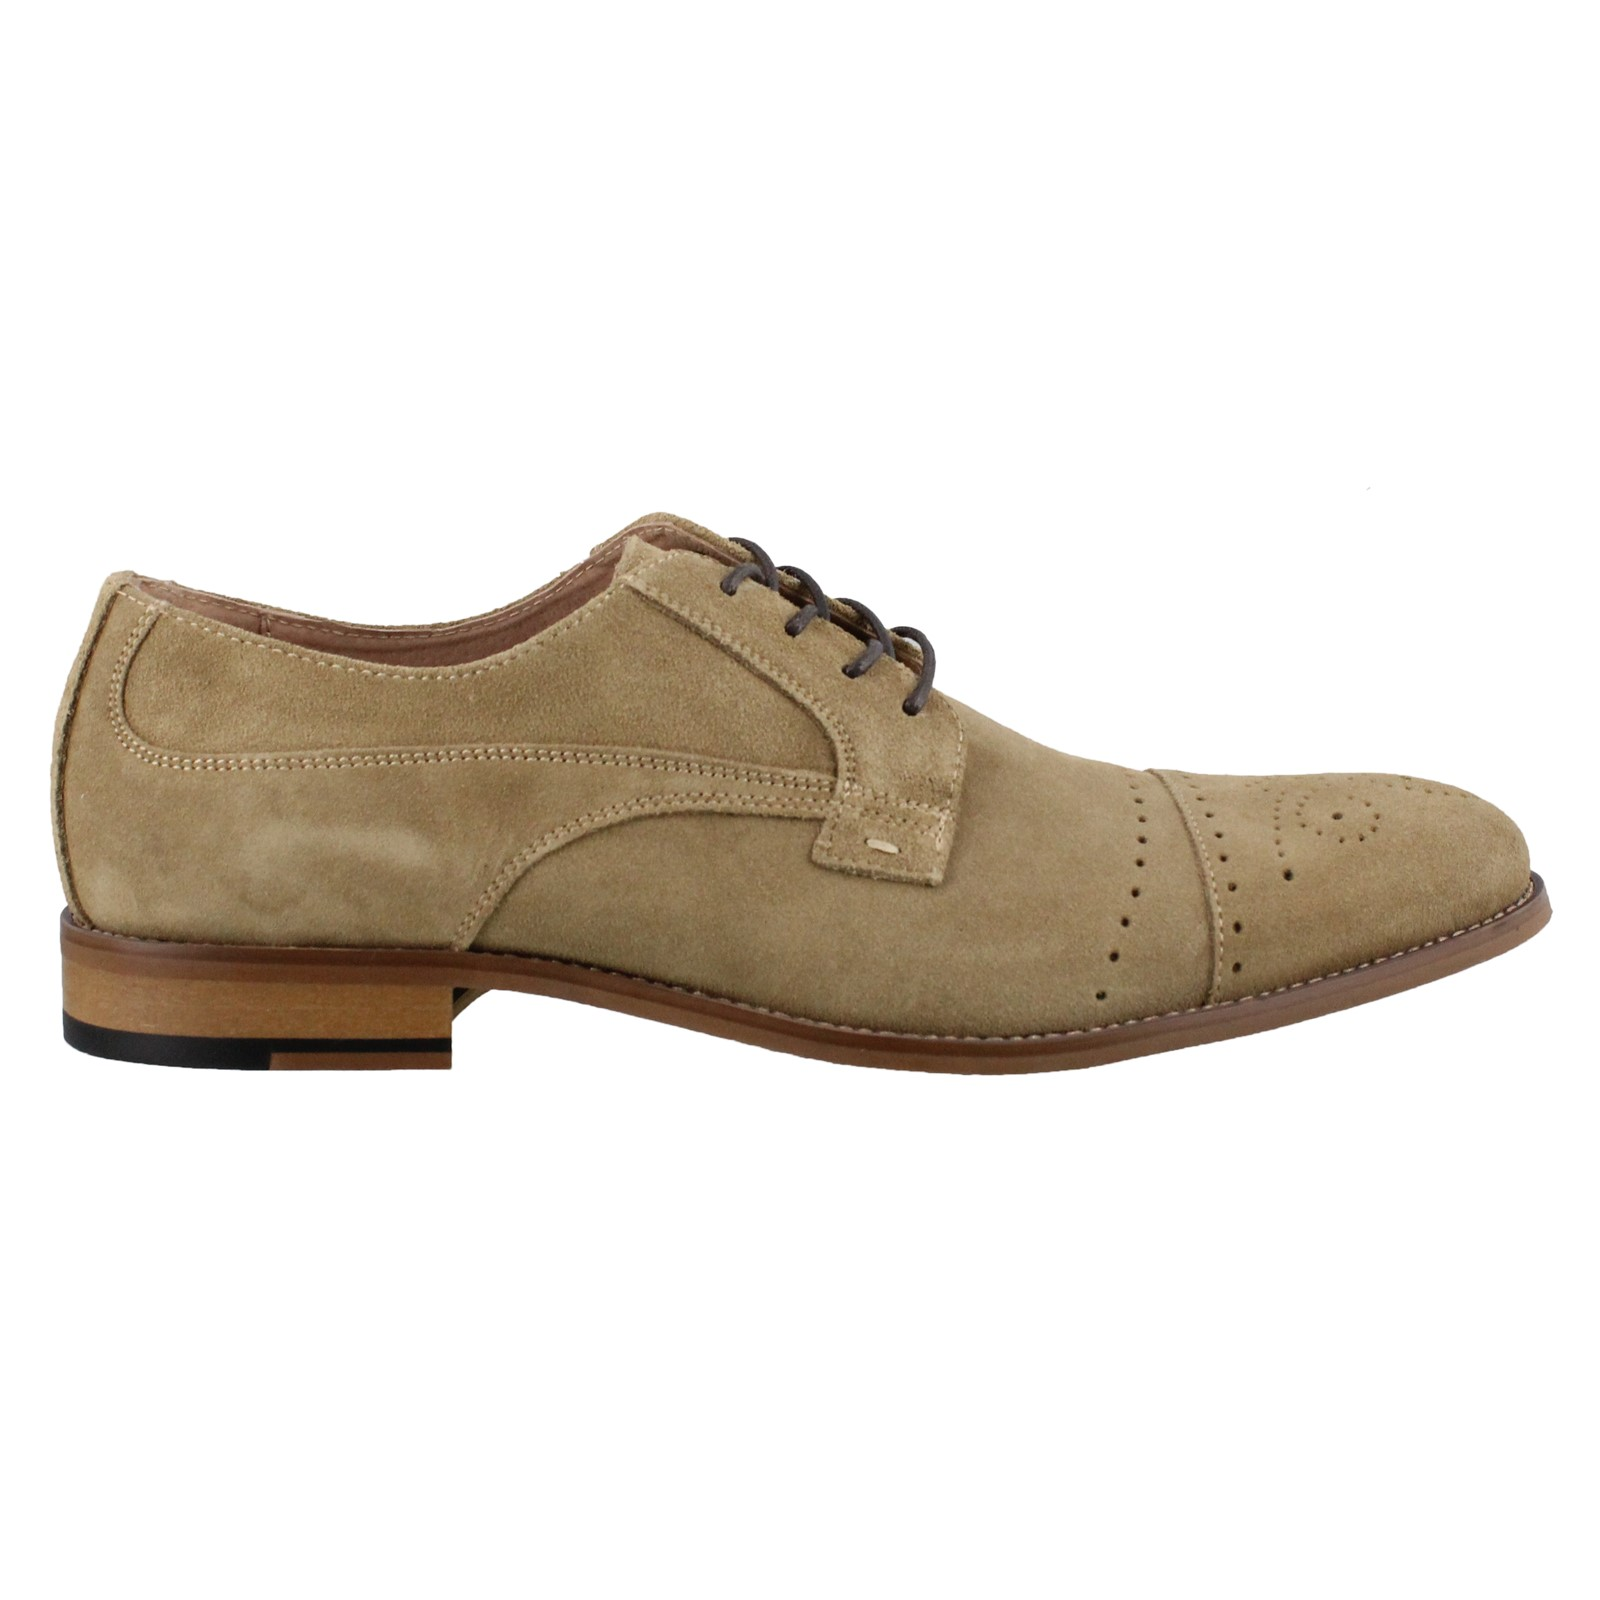 Men's Stacy Adams, Deacon Lace up Oxfords